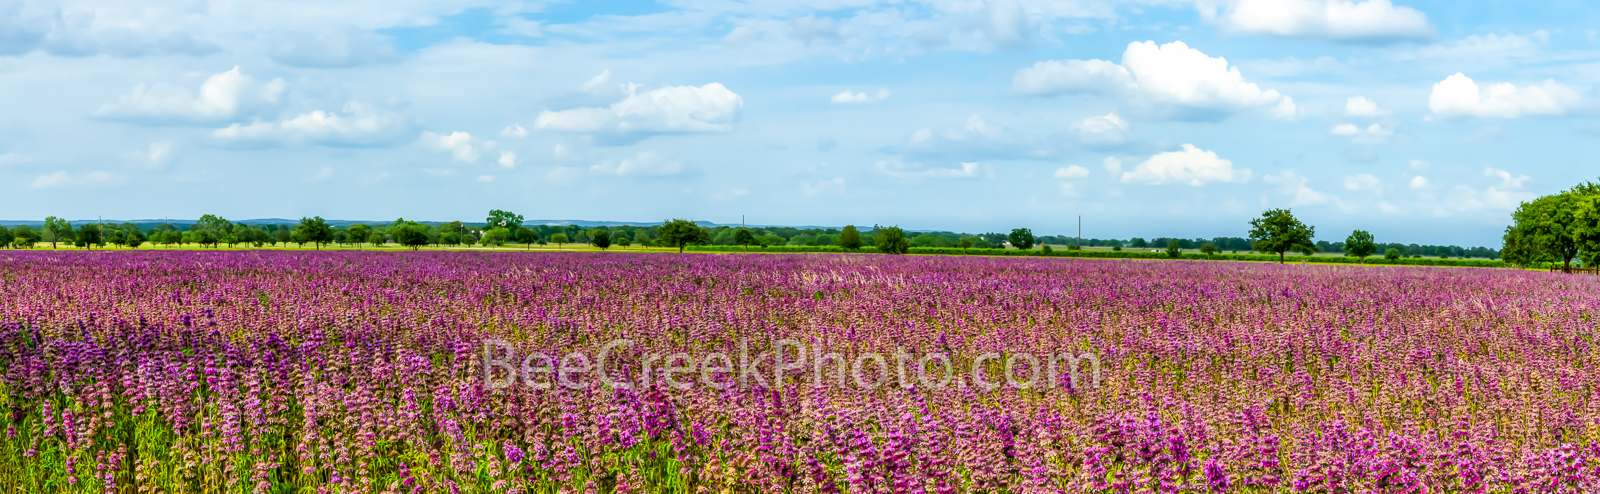 lemon horsemint, flowers, lavendar, purple, pink, field, farmland, crop, farm land, texas hill country, pano, panorama, landscape, commericial crops, seeds, plant, horsemint, blooms, , photo